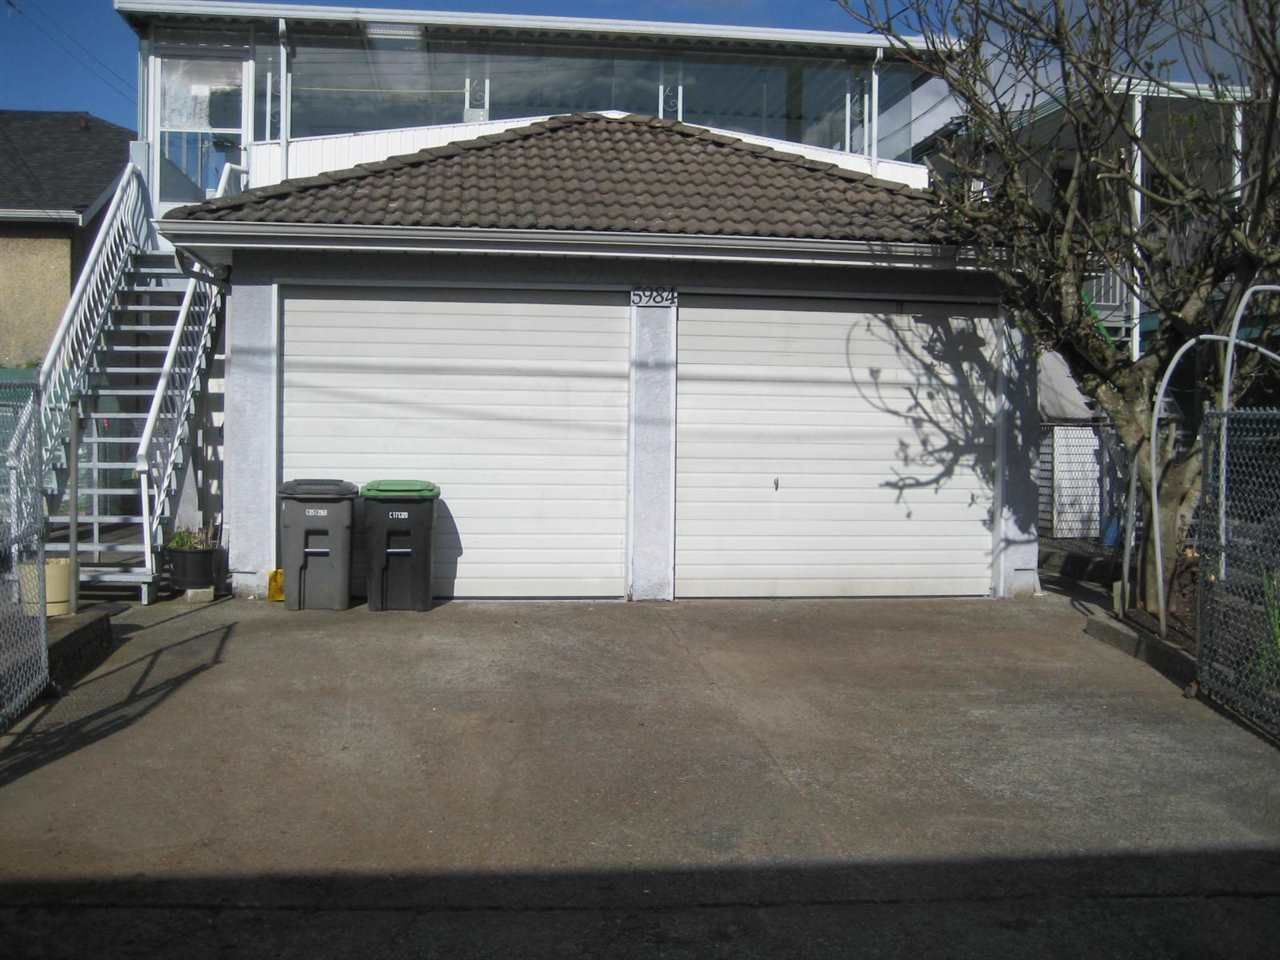 Photo 35: Photos: 5984 E VICTORIA Drive in Vancouver: Killarney VE House for sale (Vancouver East)  : MLS®# R2571656